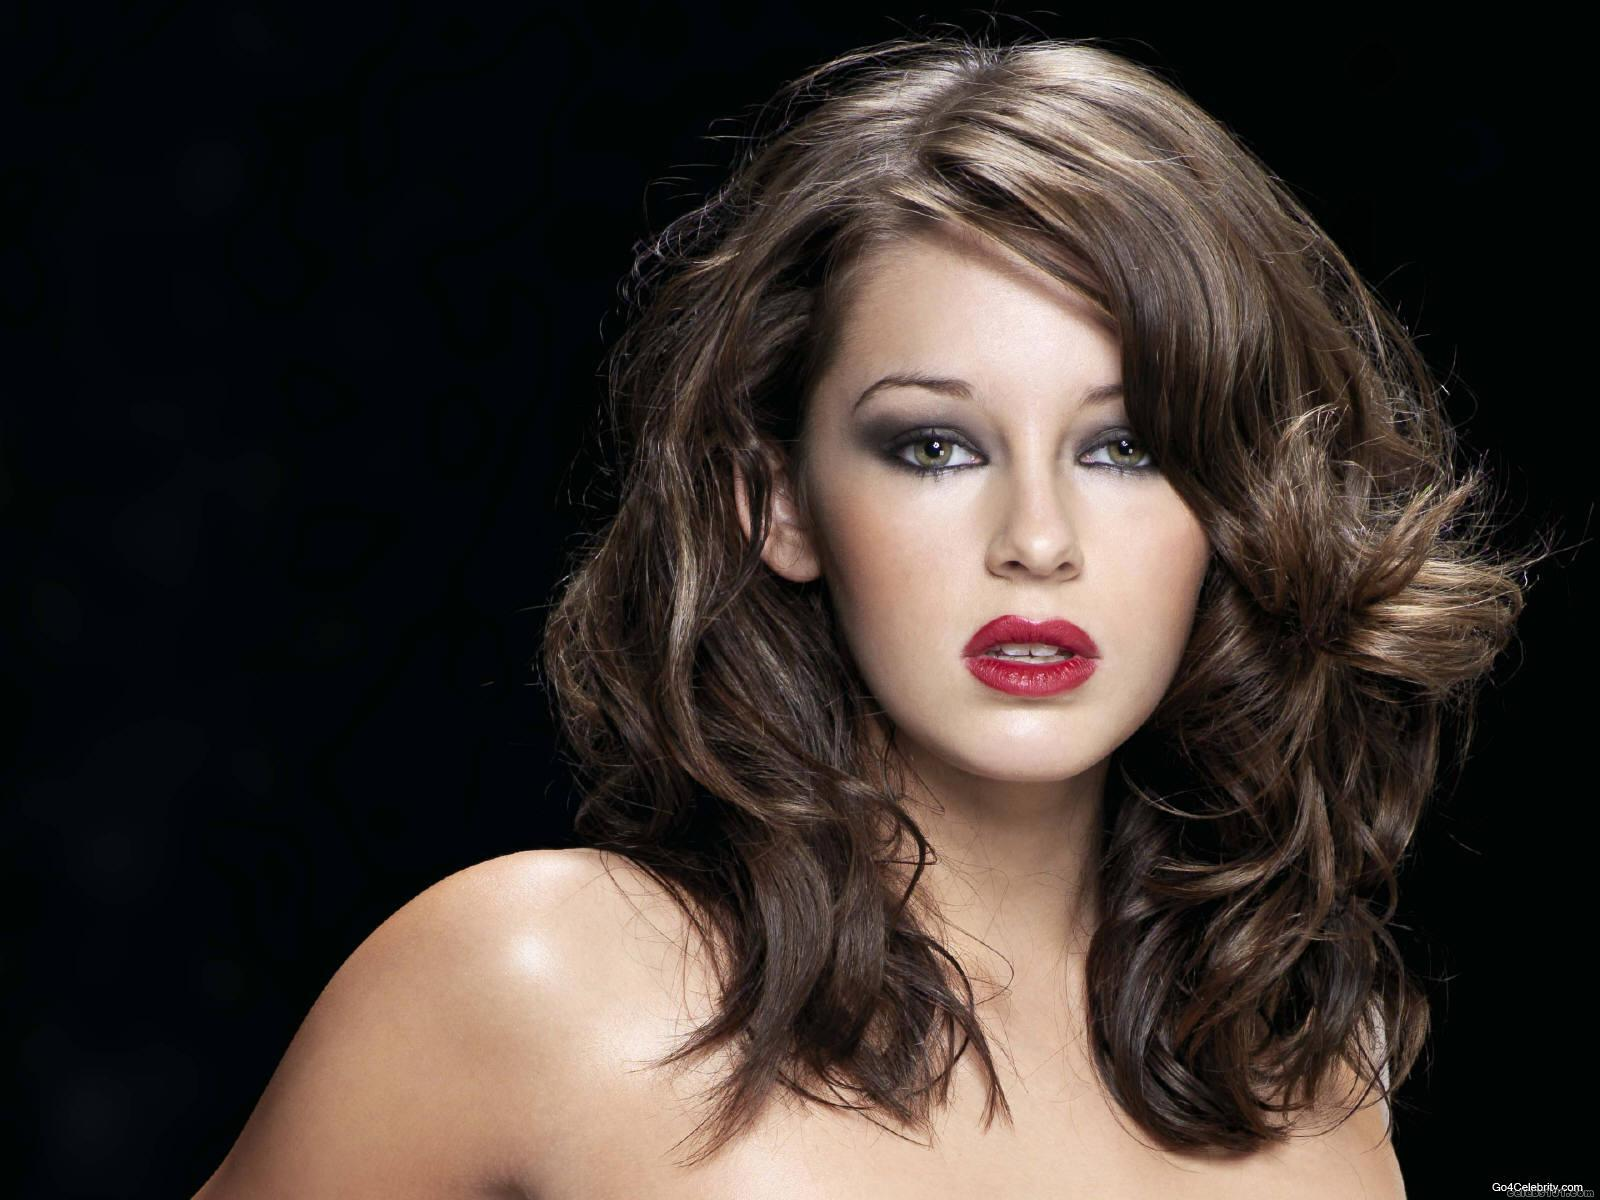 Keeley Hazell High quality wallpaper size 1600x1200 of Keeley Hazell ...